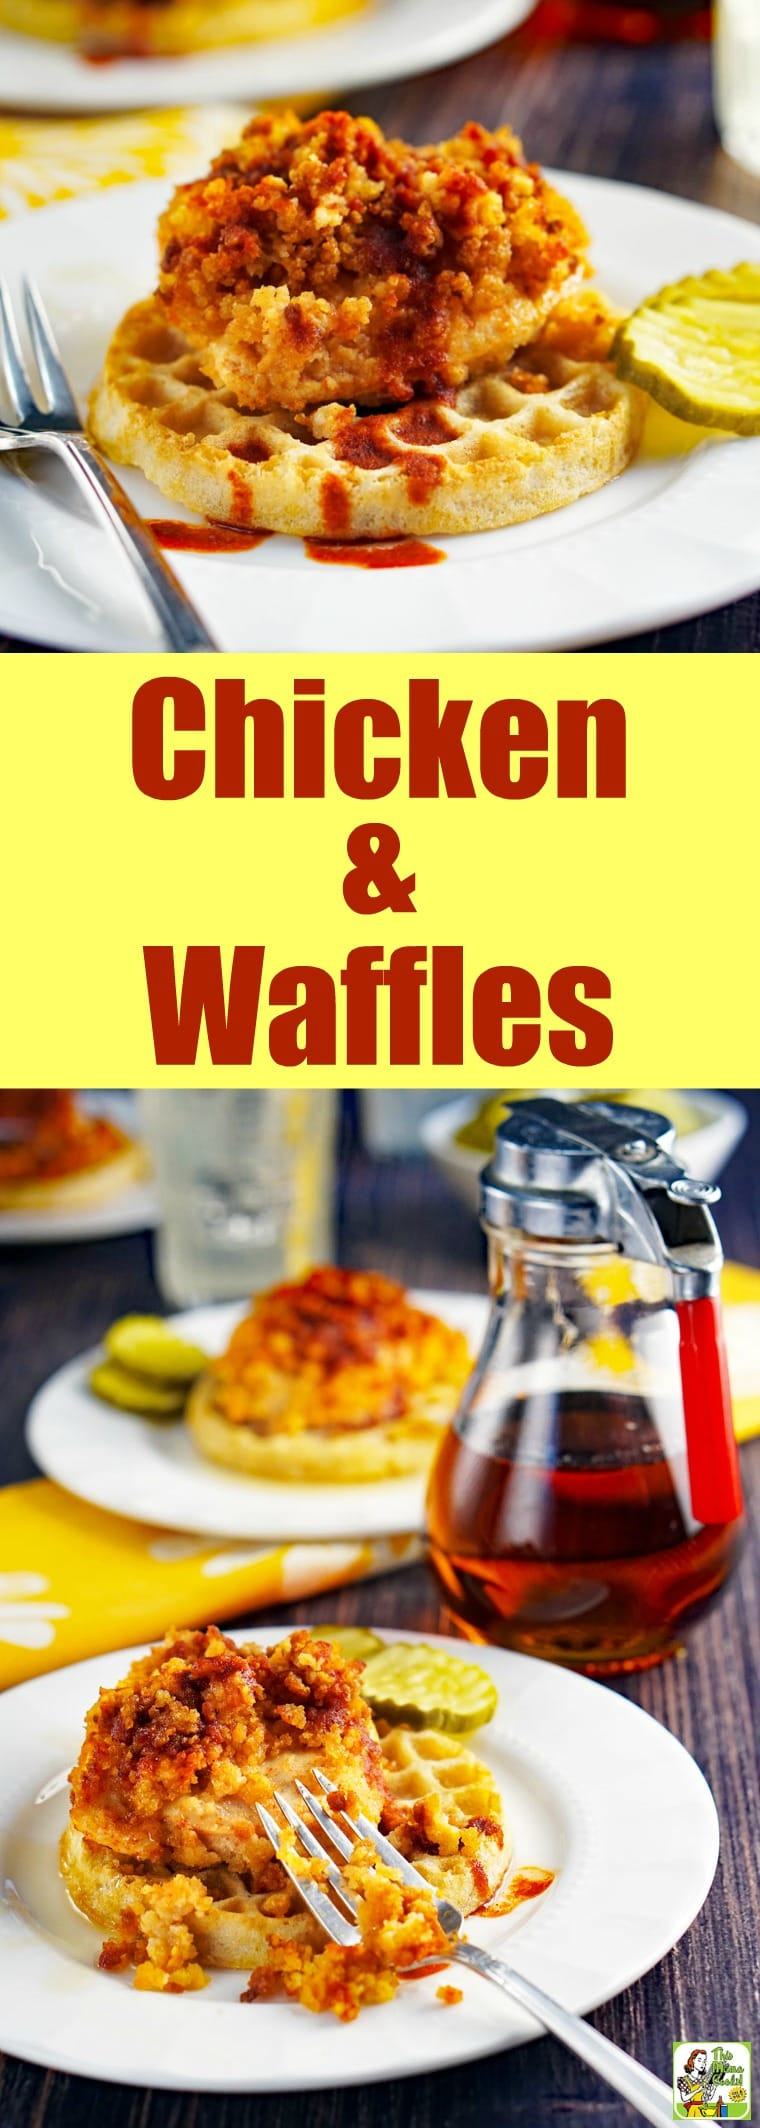 This gluten-free Chicken and Waffles Recipe is a take on hot Nashville chicken and waffles. Easy to make since it uses gluten-free frozen waffles and is baked in the oven. #dairyfree #recipes #easy #recipeoftheday #glutenfree #easyrecipe #glutenfreerecipes #dinner #easydinner #dinnerrecipes #dinnerideas #chicken #chickenfoodrecipes #chickenrecipes #waffles